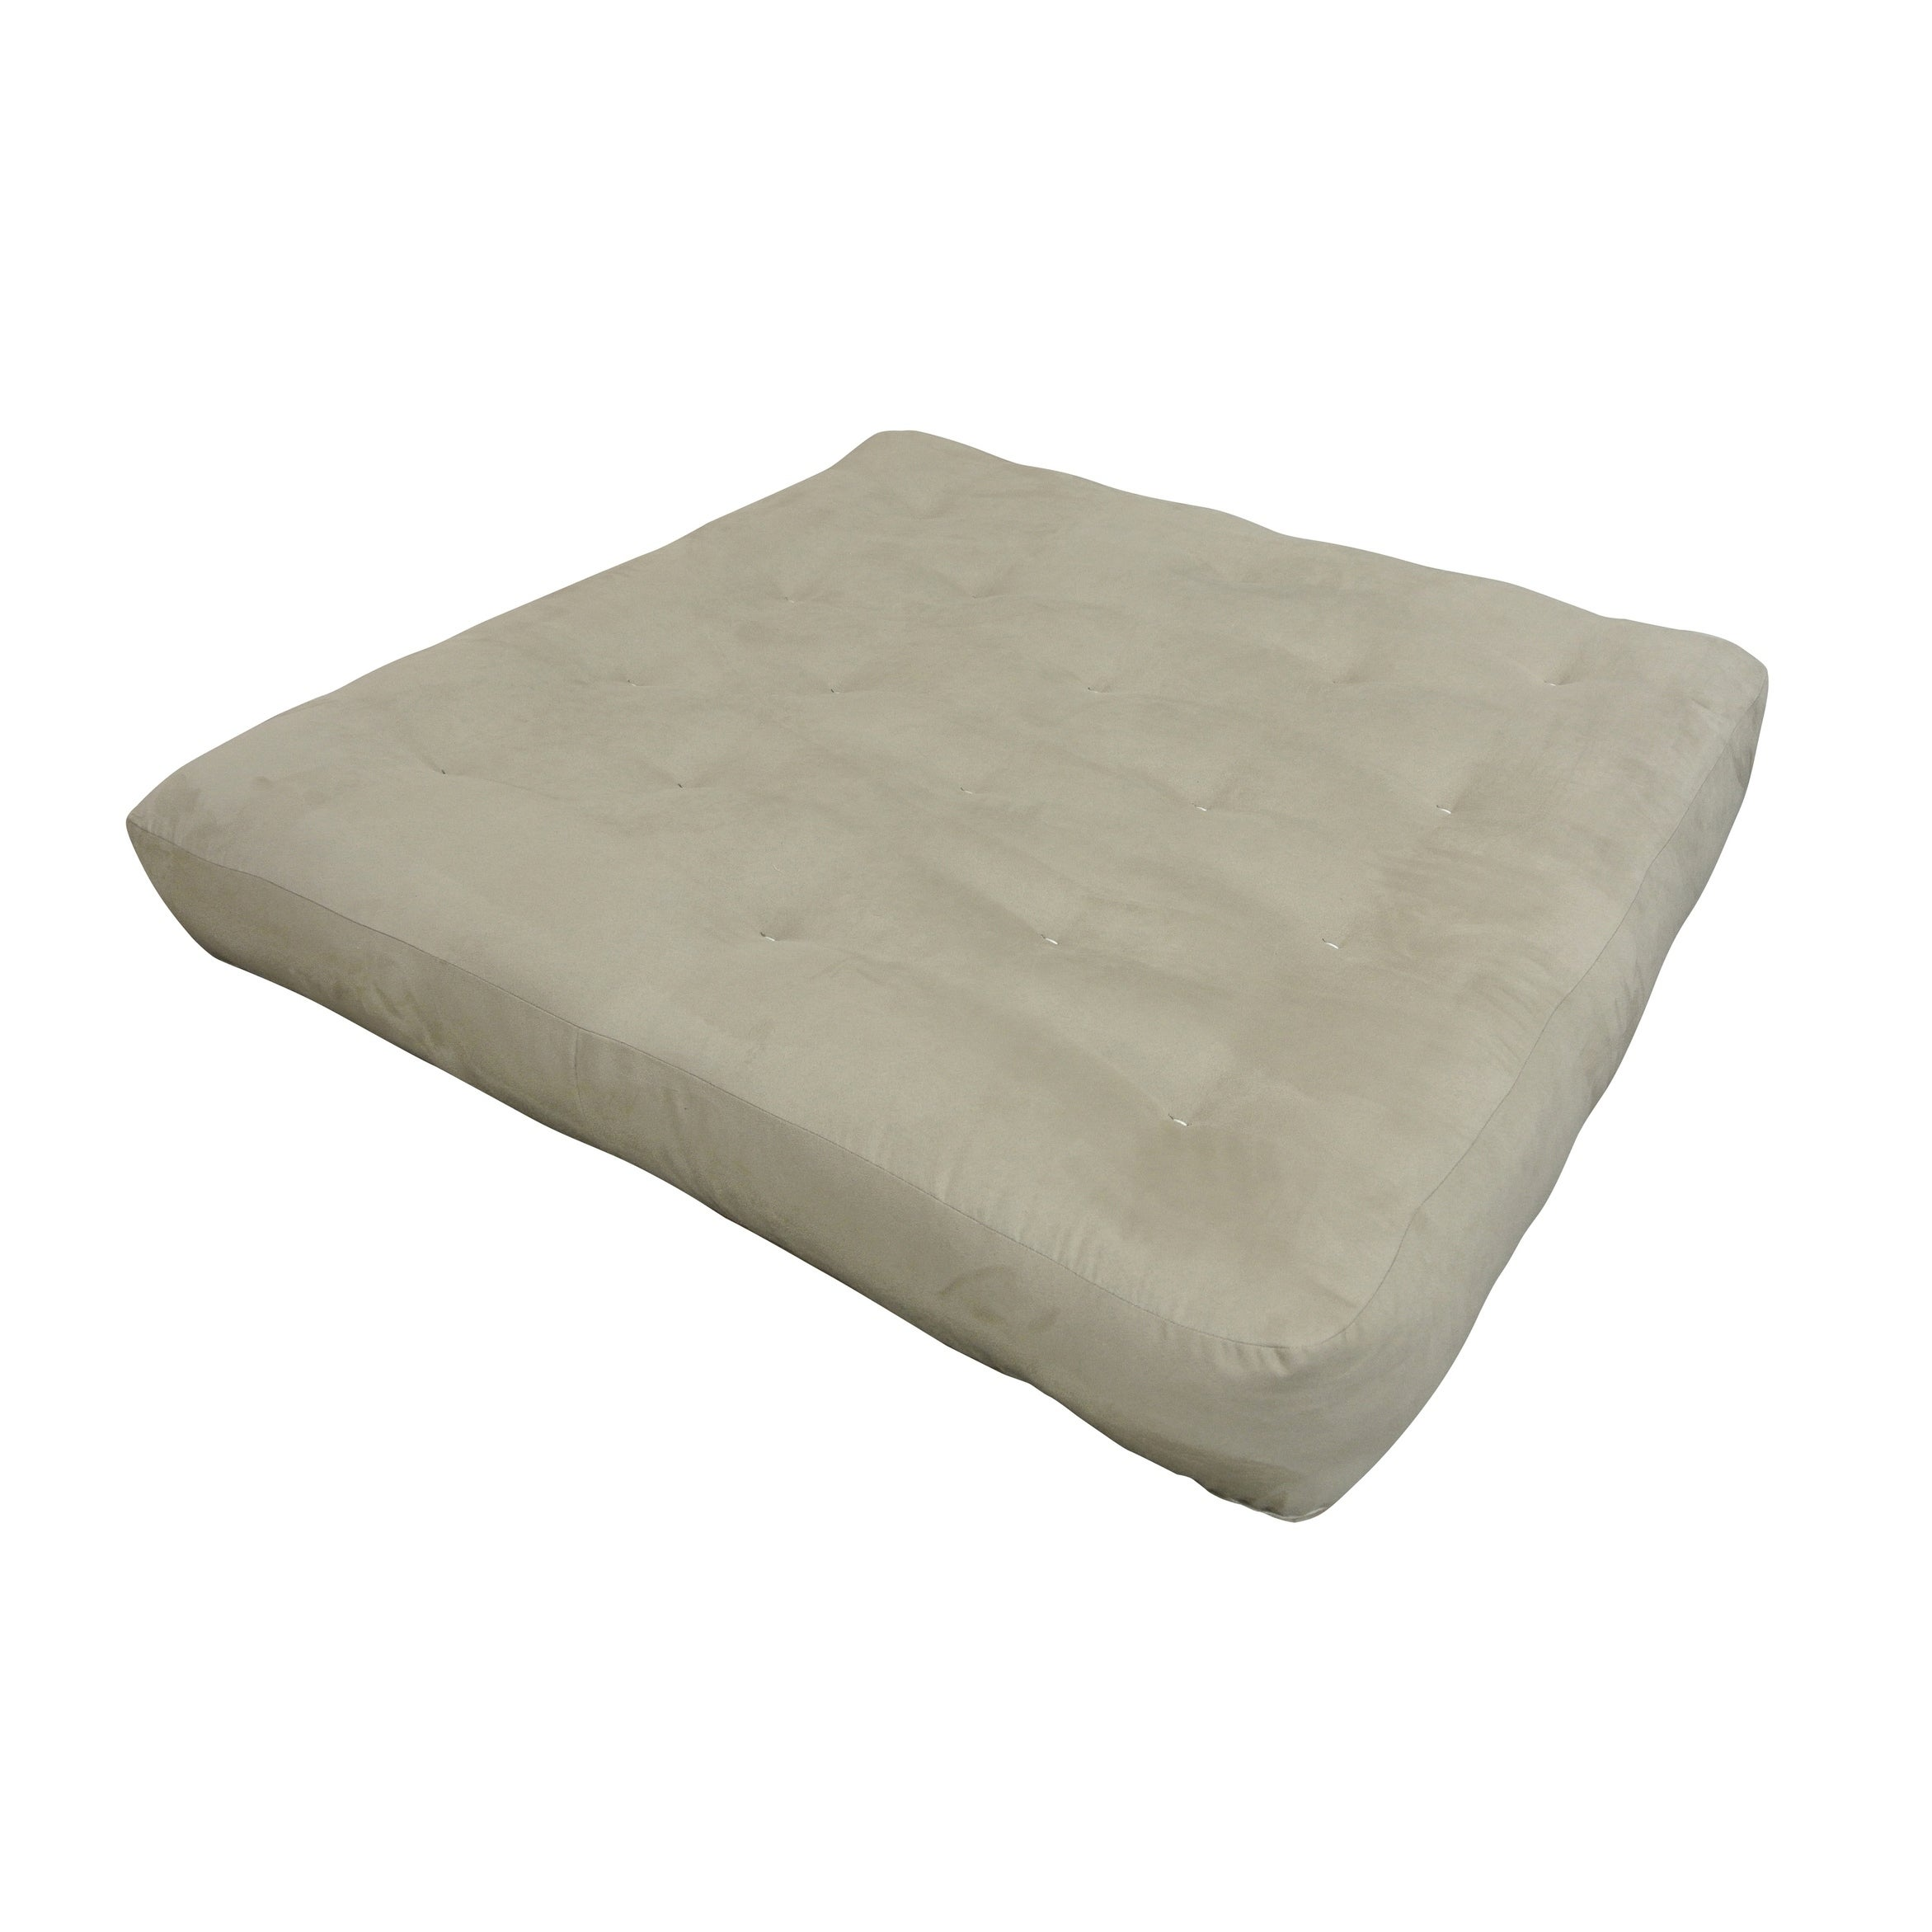 white beautyrest futon innersprng simmons pocketed coil cover mattress off visco qn mat beige pin